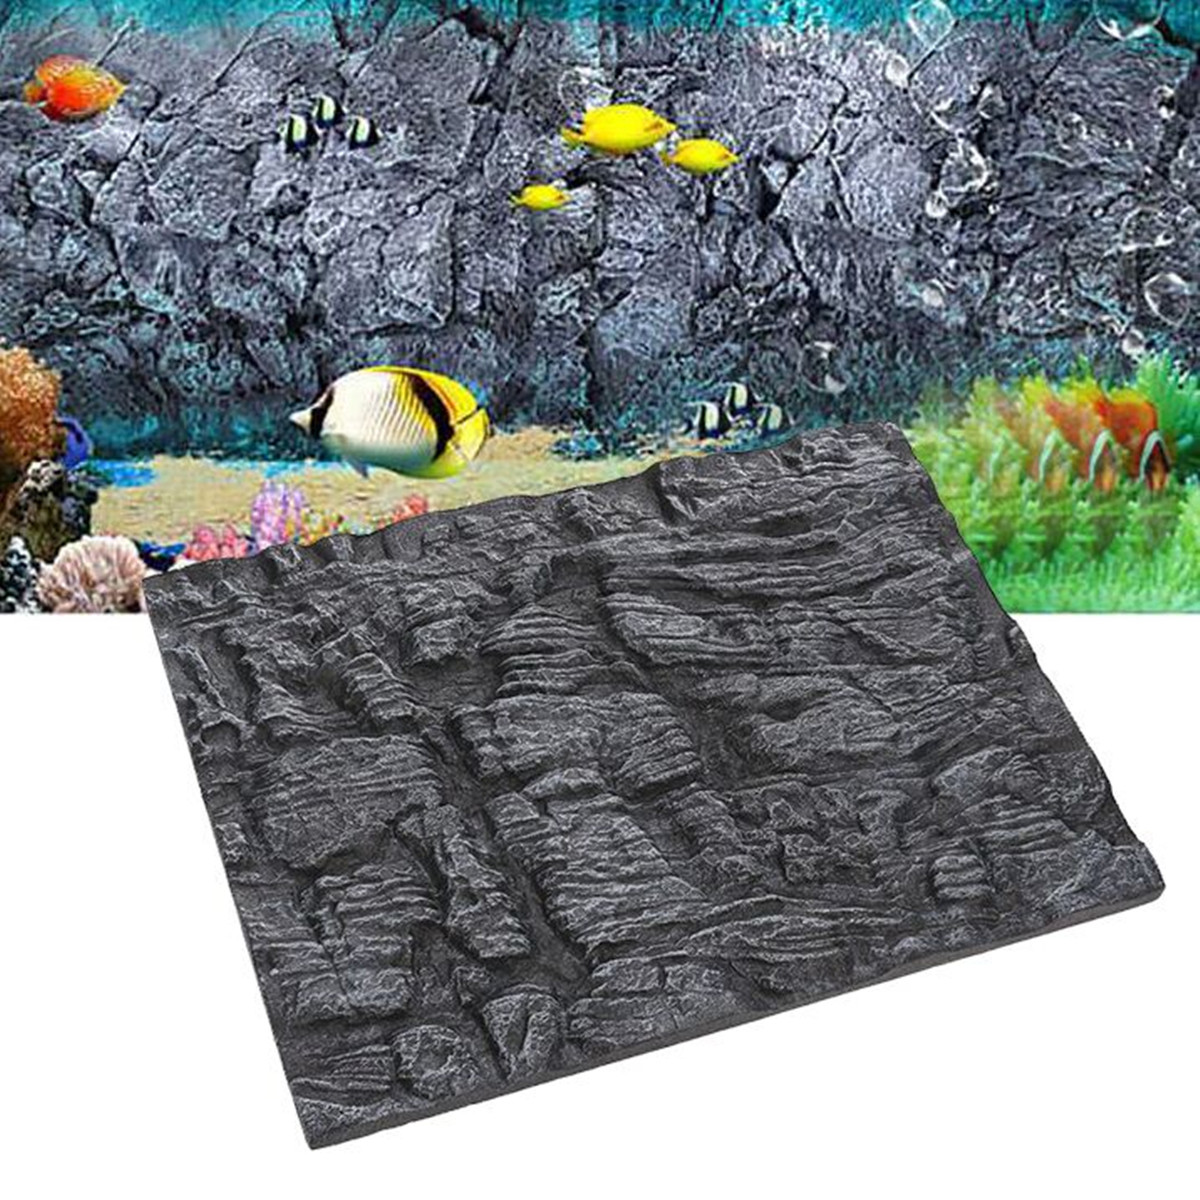 3D Foam Rock Reptile Stone Aquarium Fish Tank Background Backdrop Board Decor,Large Fish Tank Ocean Rocks Ornaments Decorations Today's Special Offer!